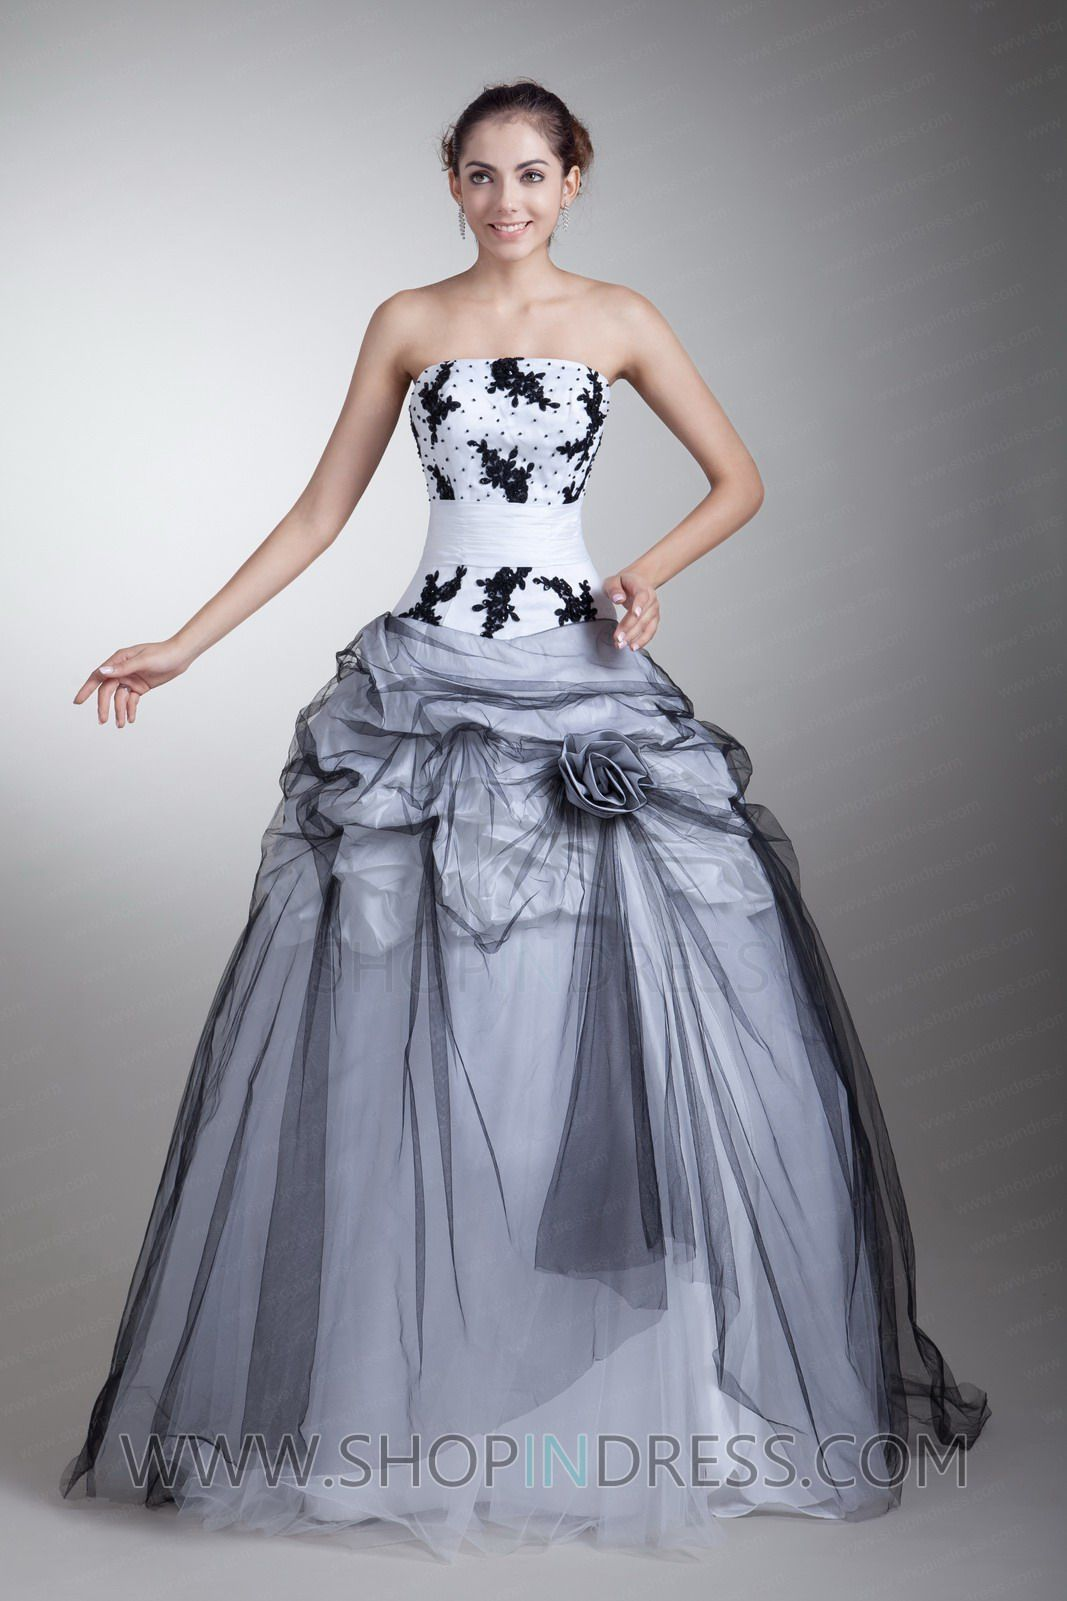 Quenceanera Dresses Lavender Silver and Black